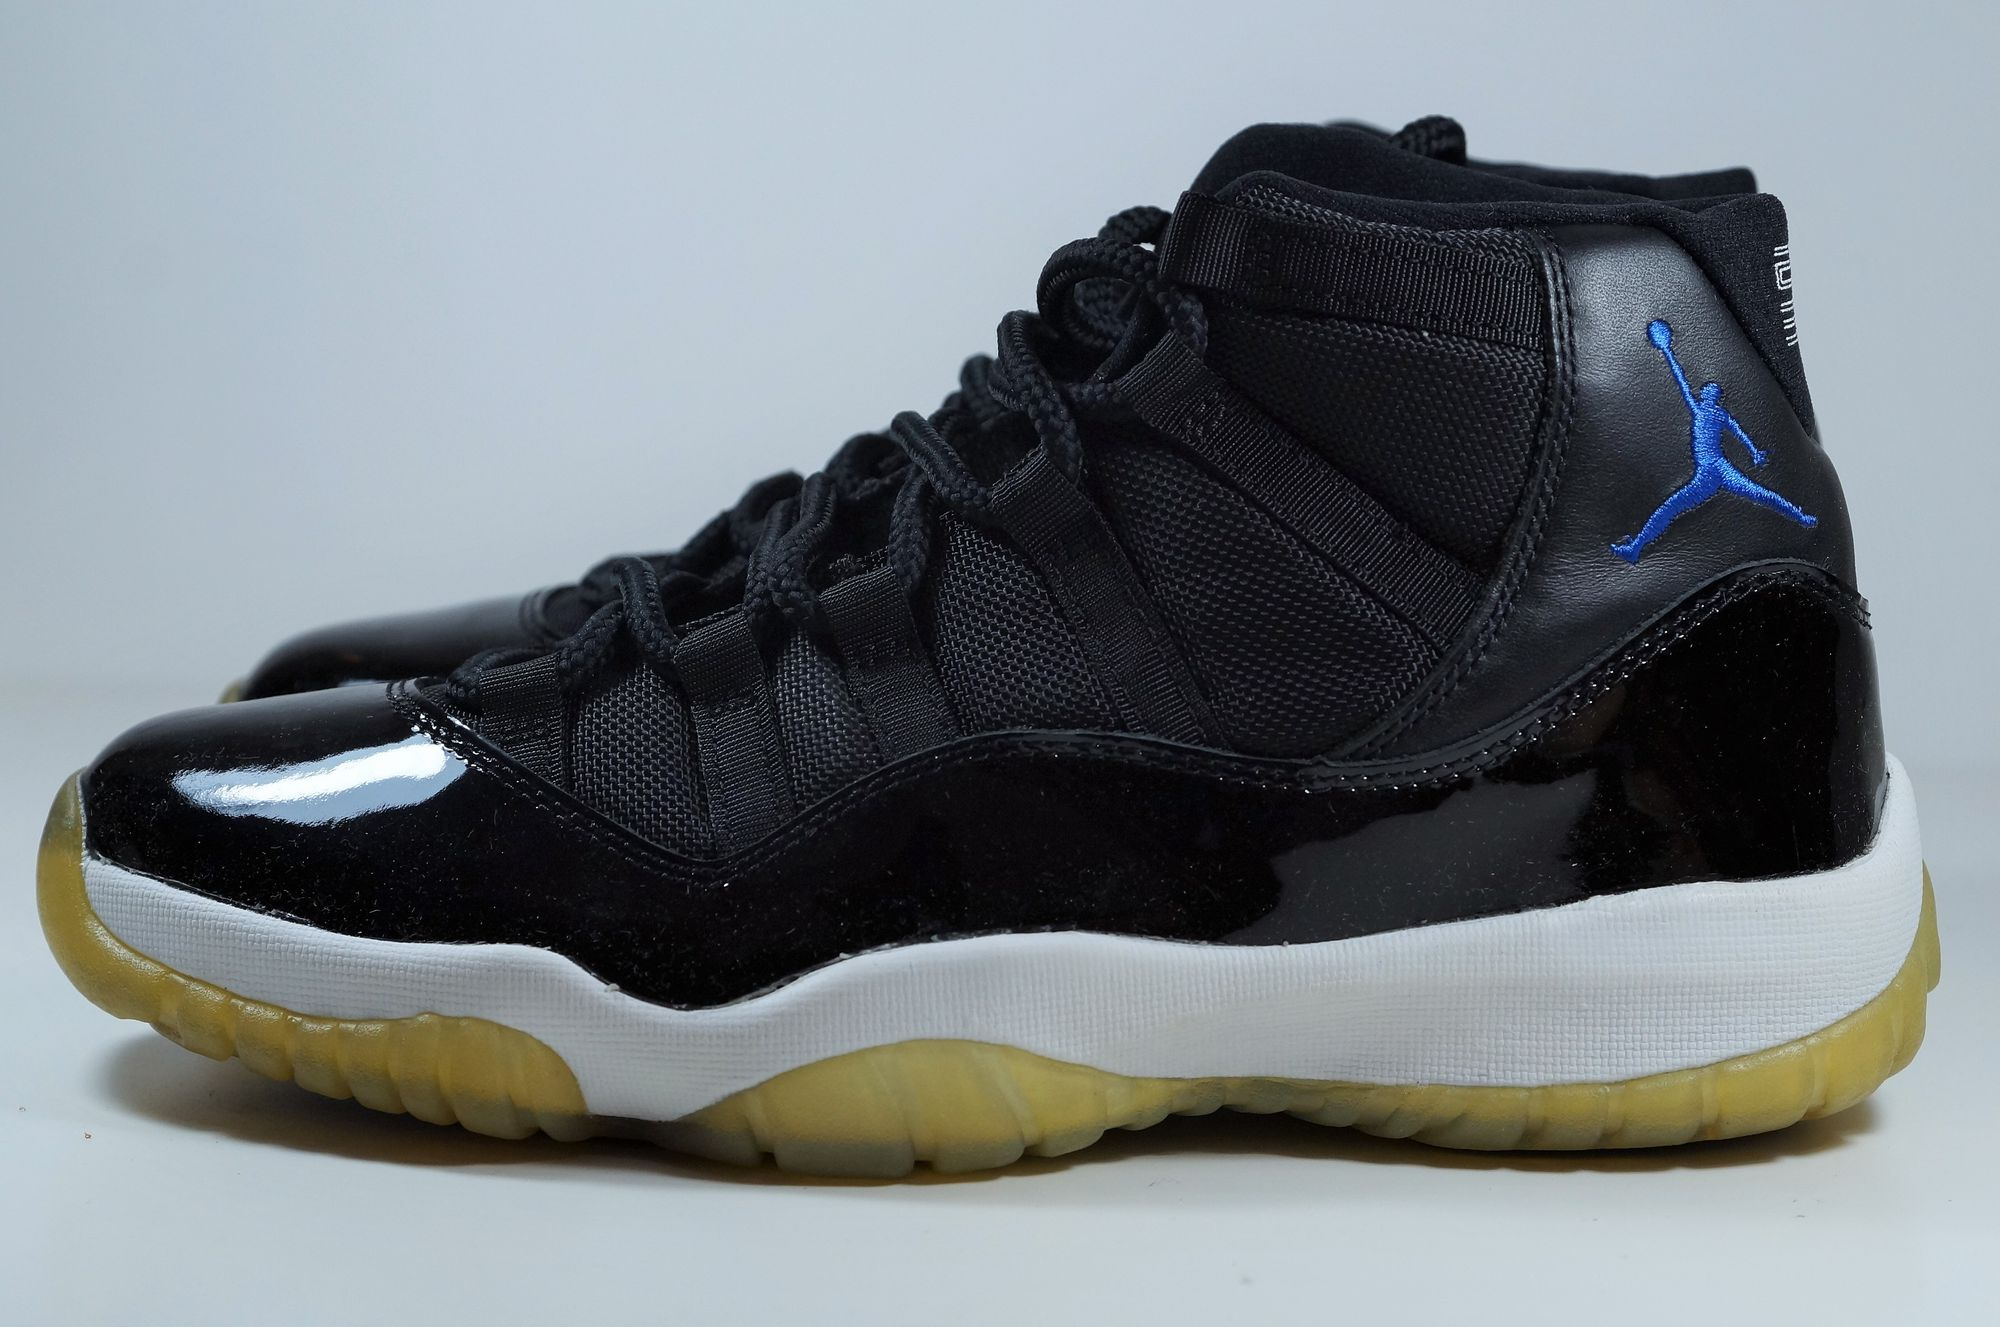 the best sale uk half price Blog - Air Jordan 11 Space Jam - Byrdwalks - Deutschland's ...